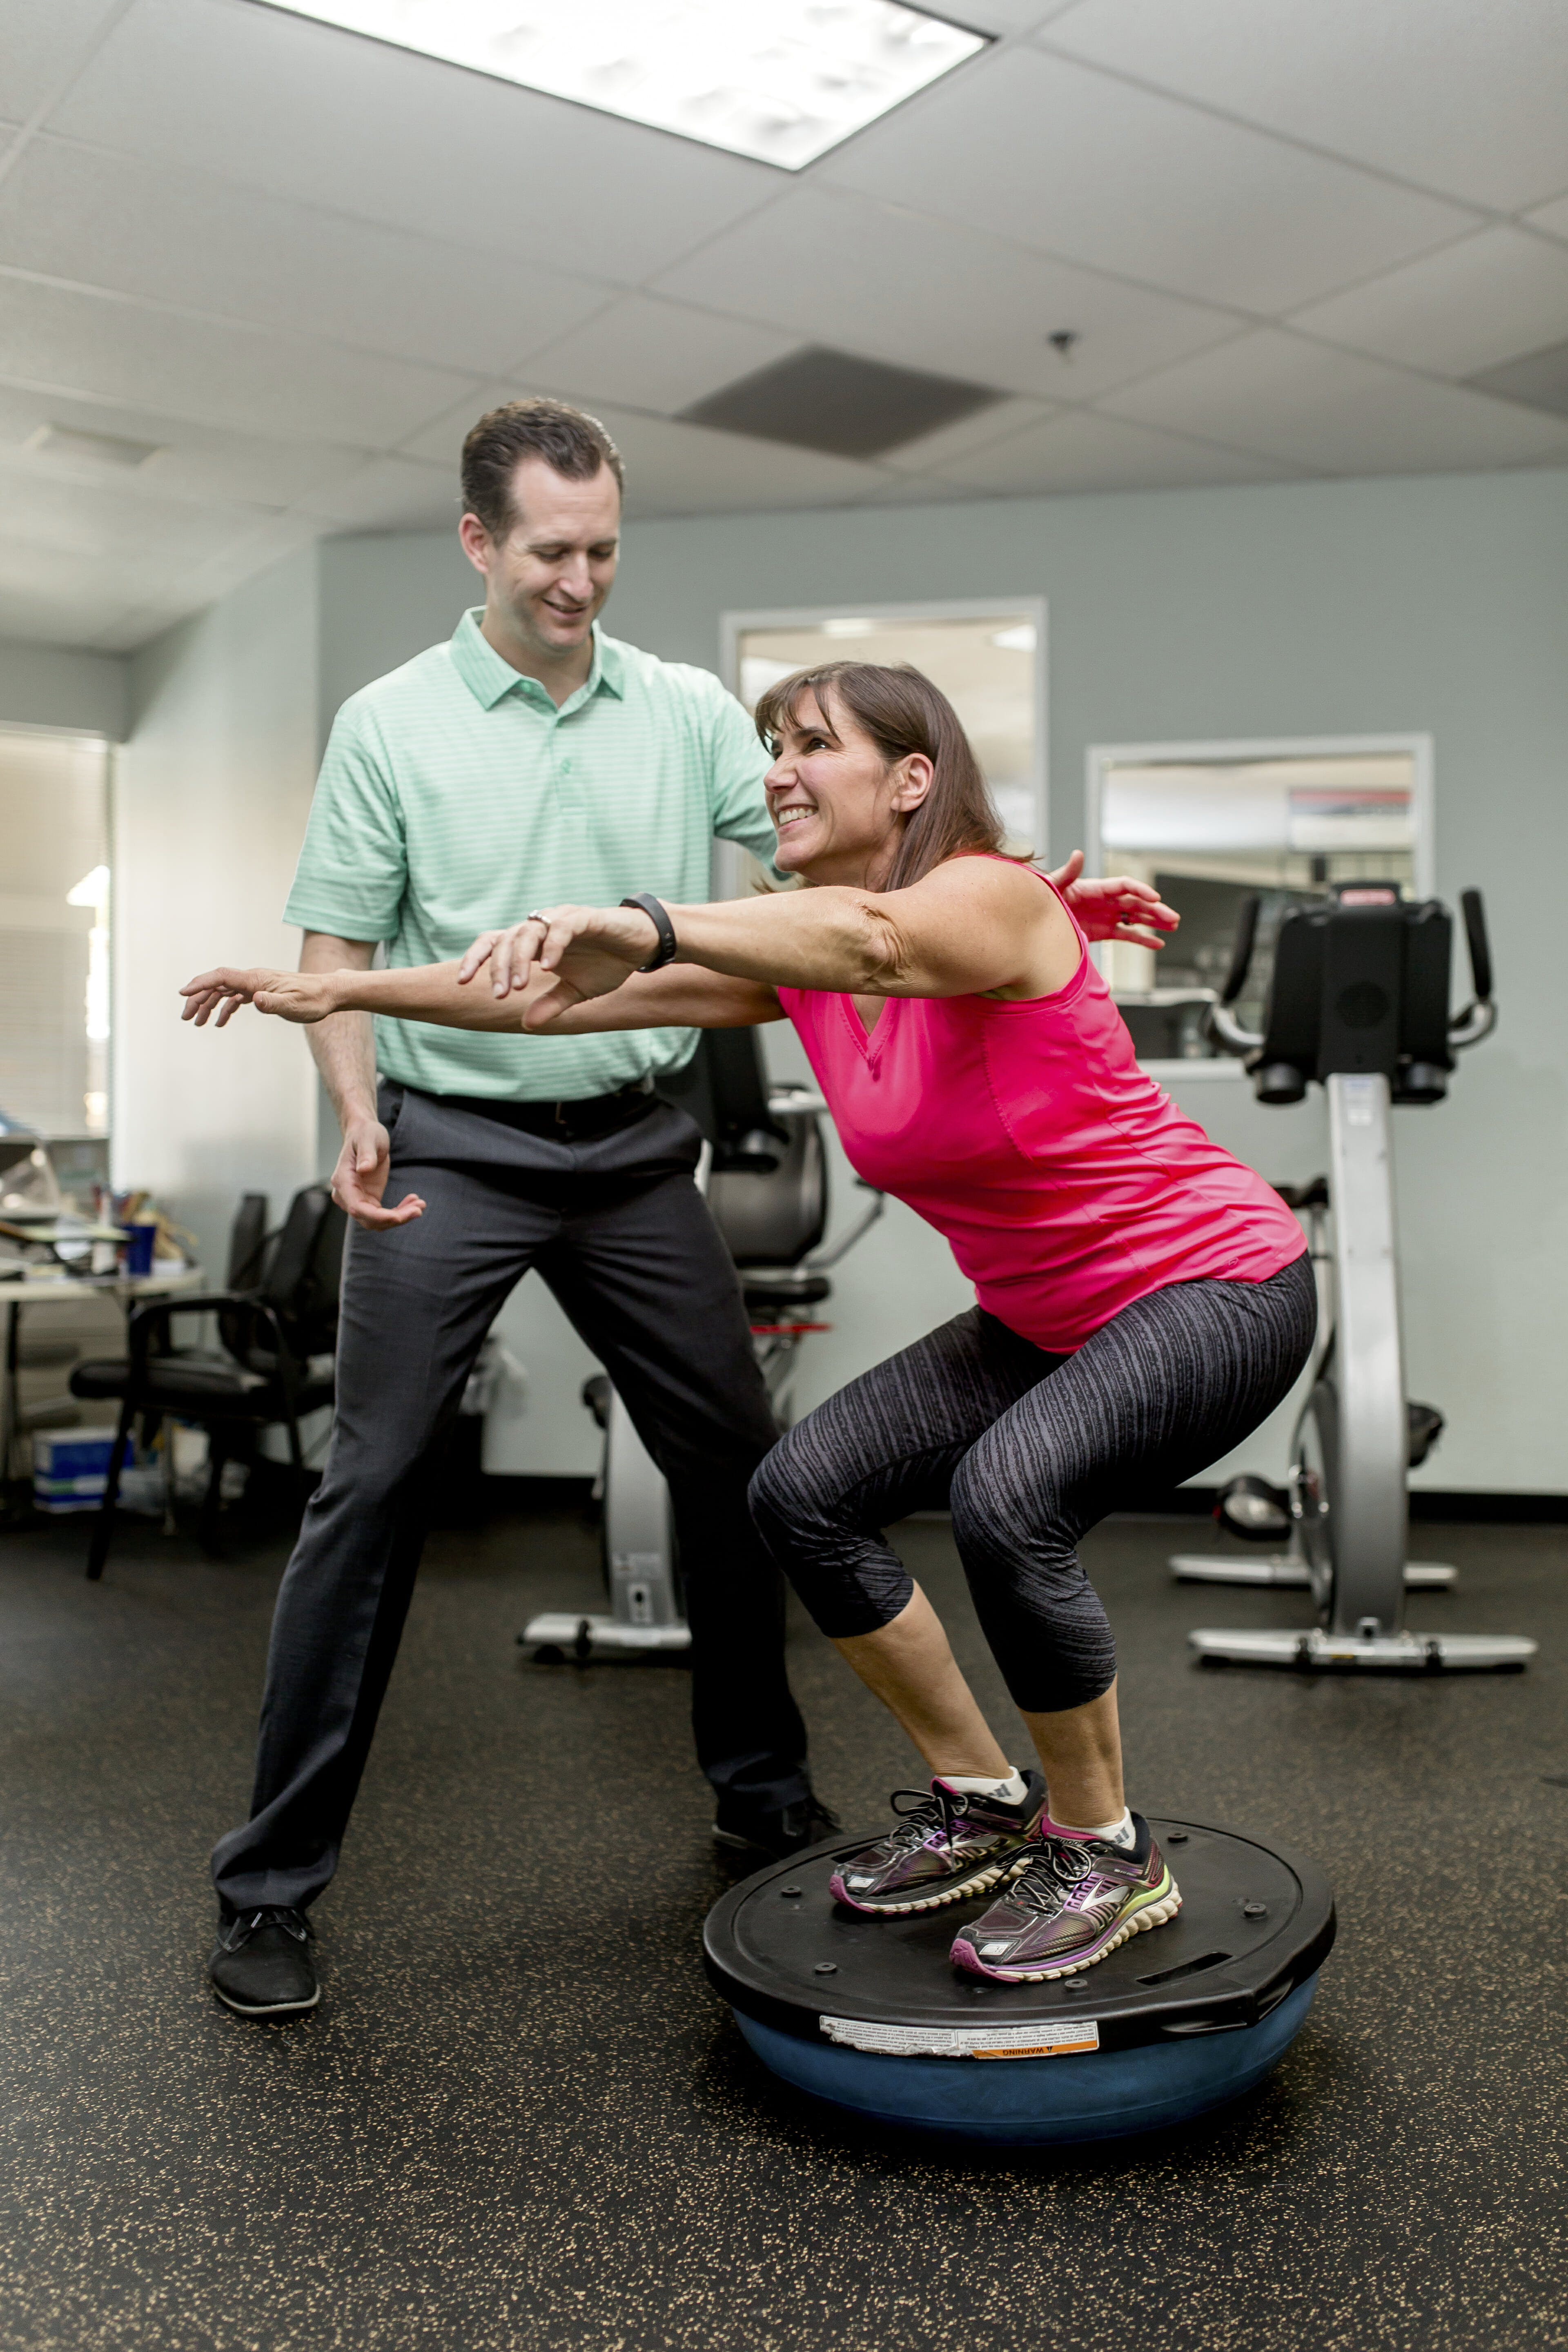 SCOR Physical Therapy | RSM Physical Therapy | Vestibular Rehabilitation